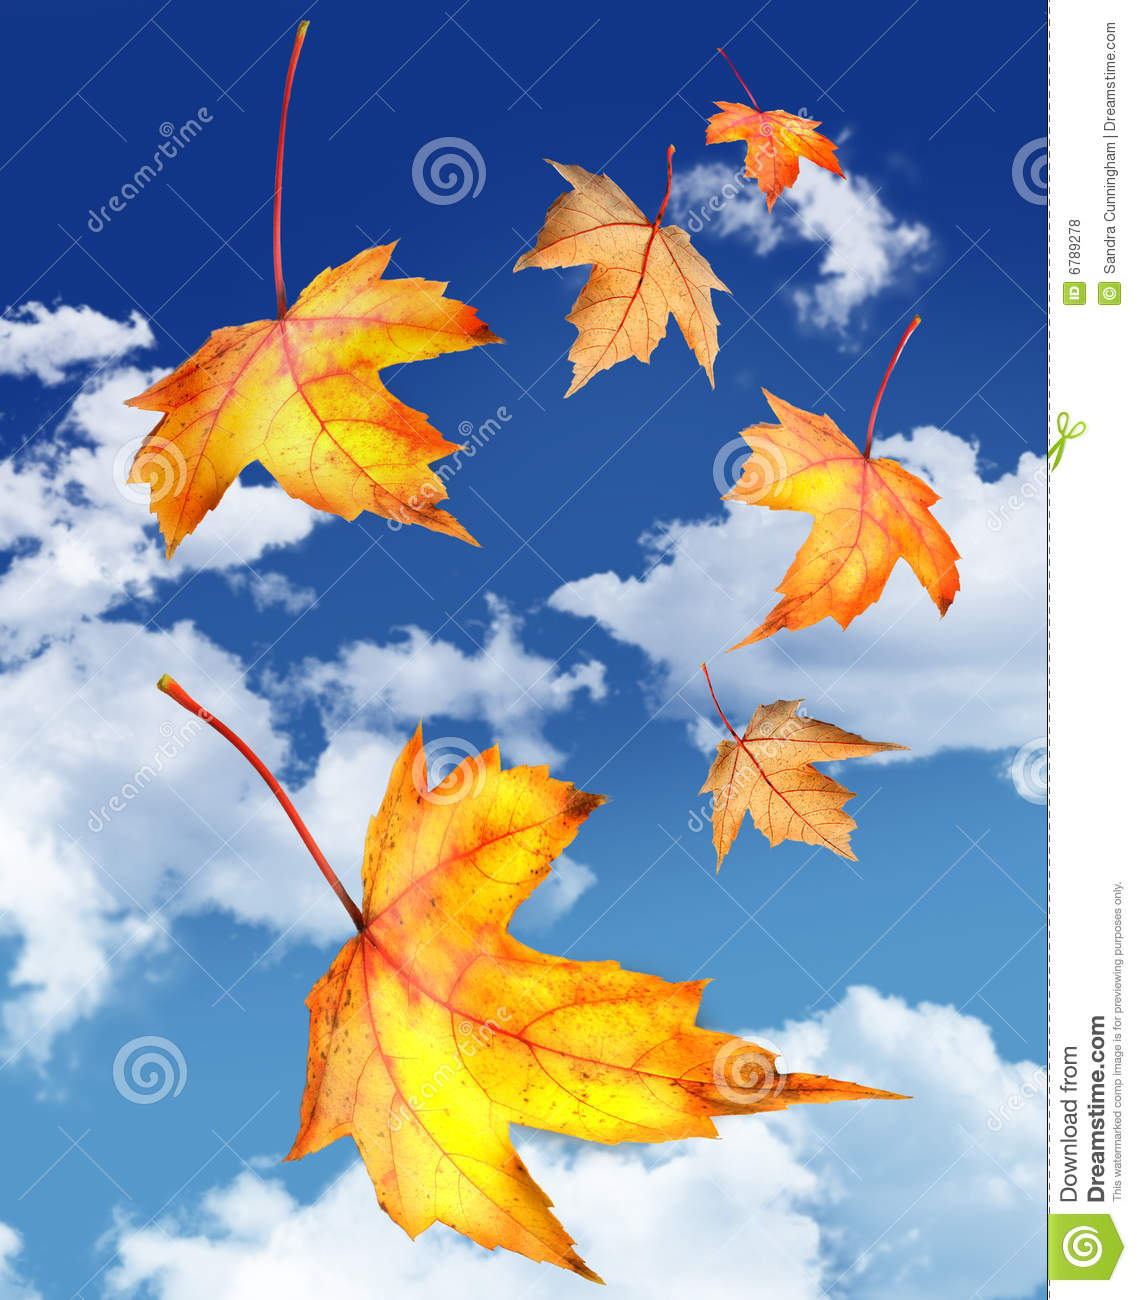 Fall Leaves Falling Wallpaper Maple Leaves Falling Against A Blue Sky Stock Photo